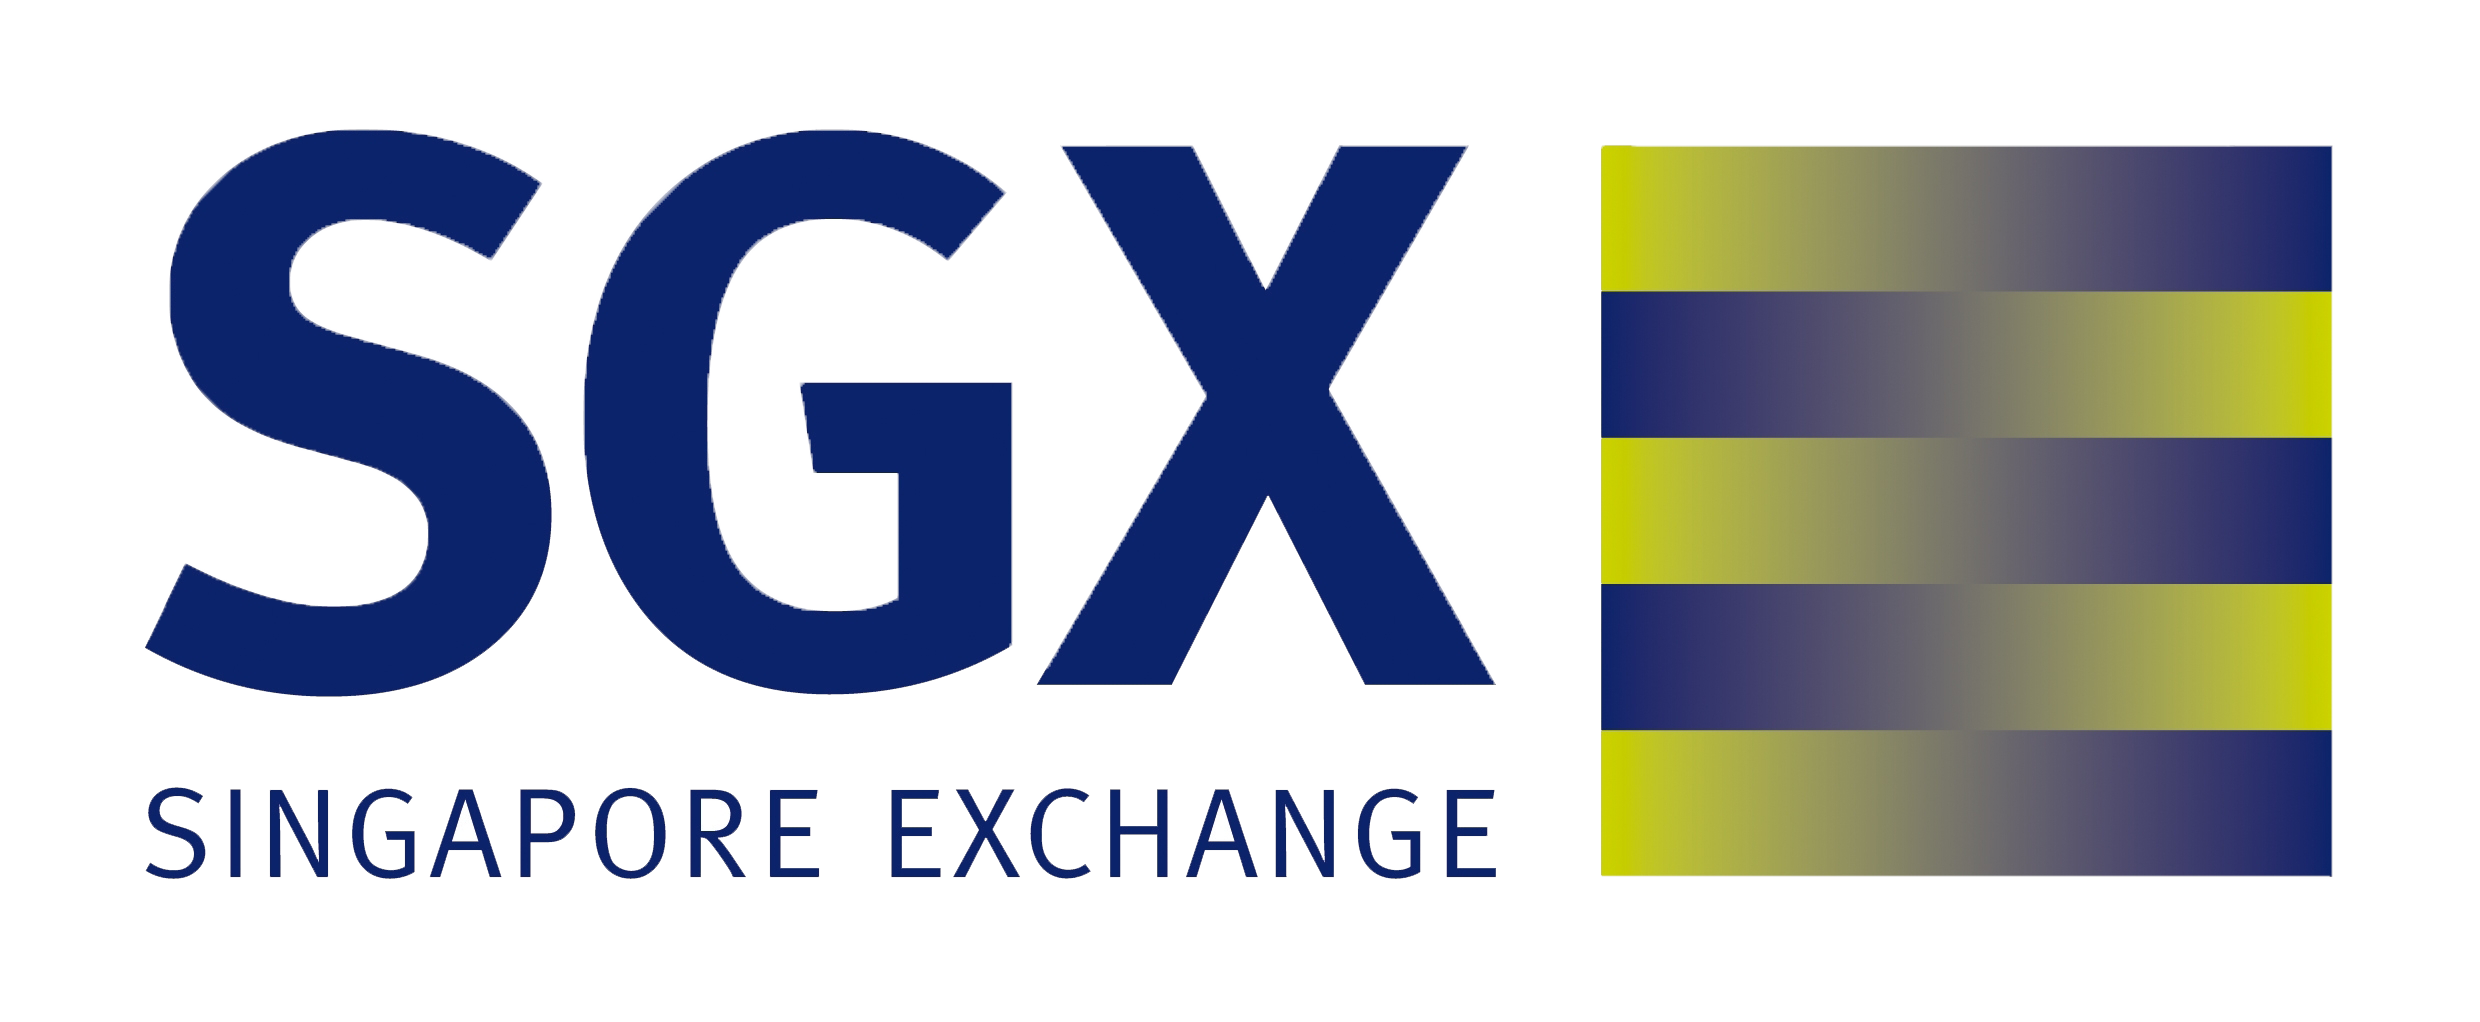 Singapore Exchange Ltd